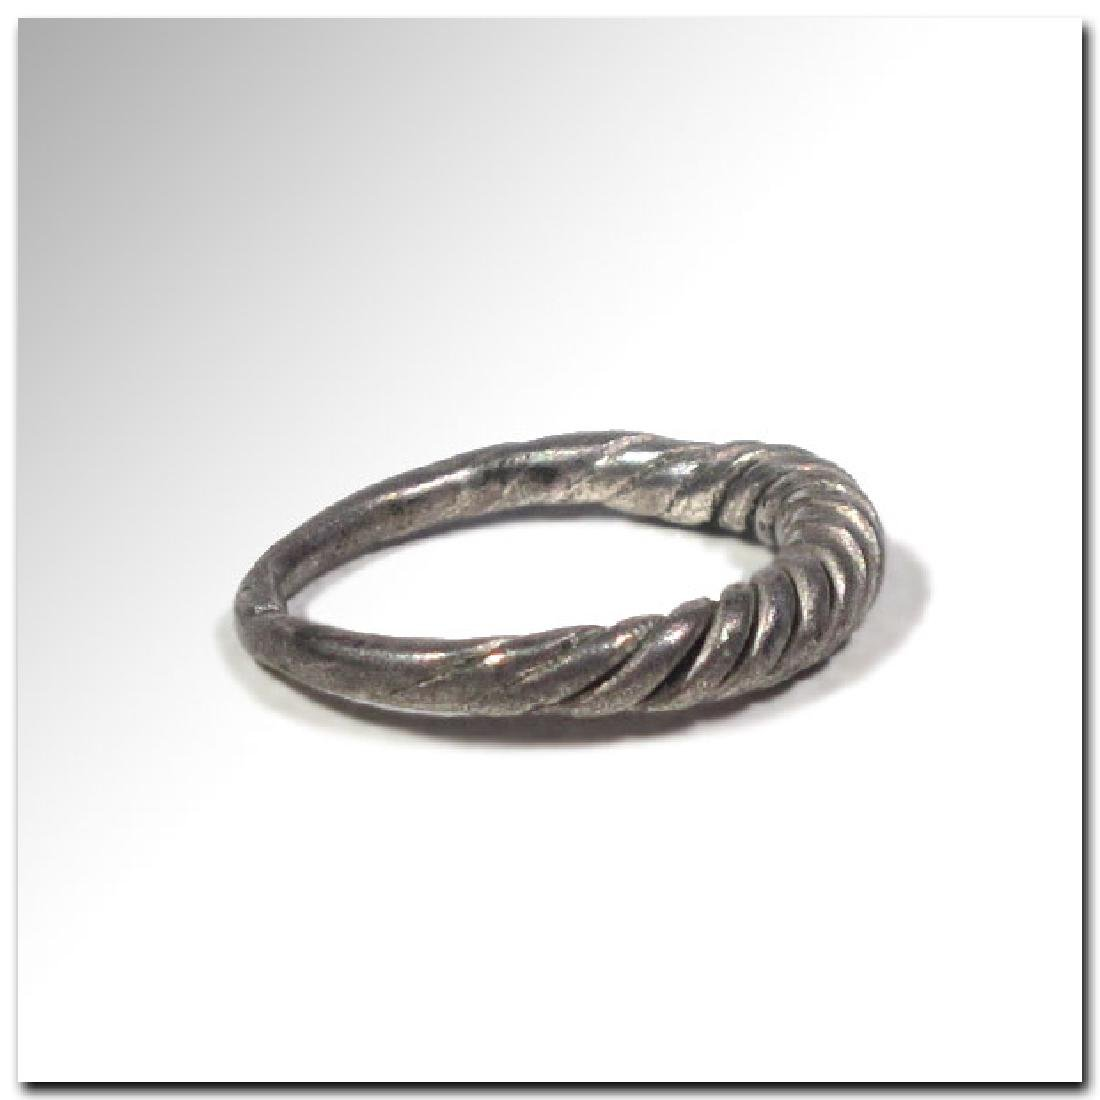 Viking Twisted Silver Ring, 9th -11th Century A.D. - 4